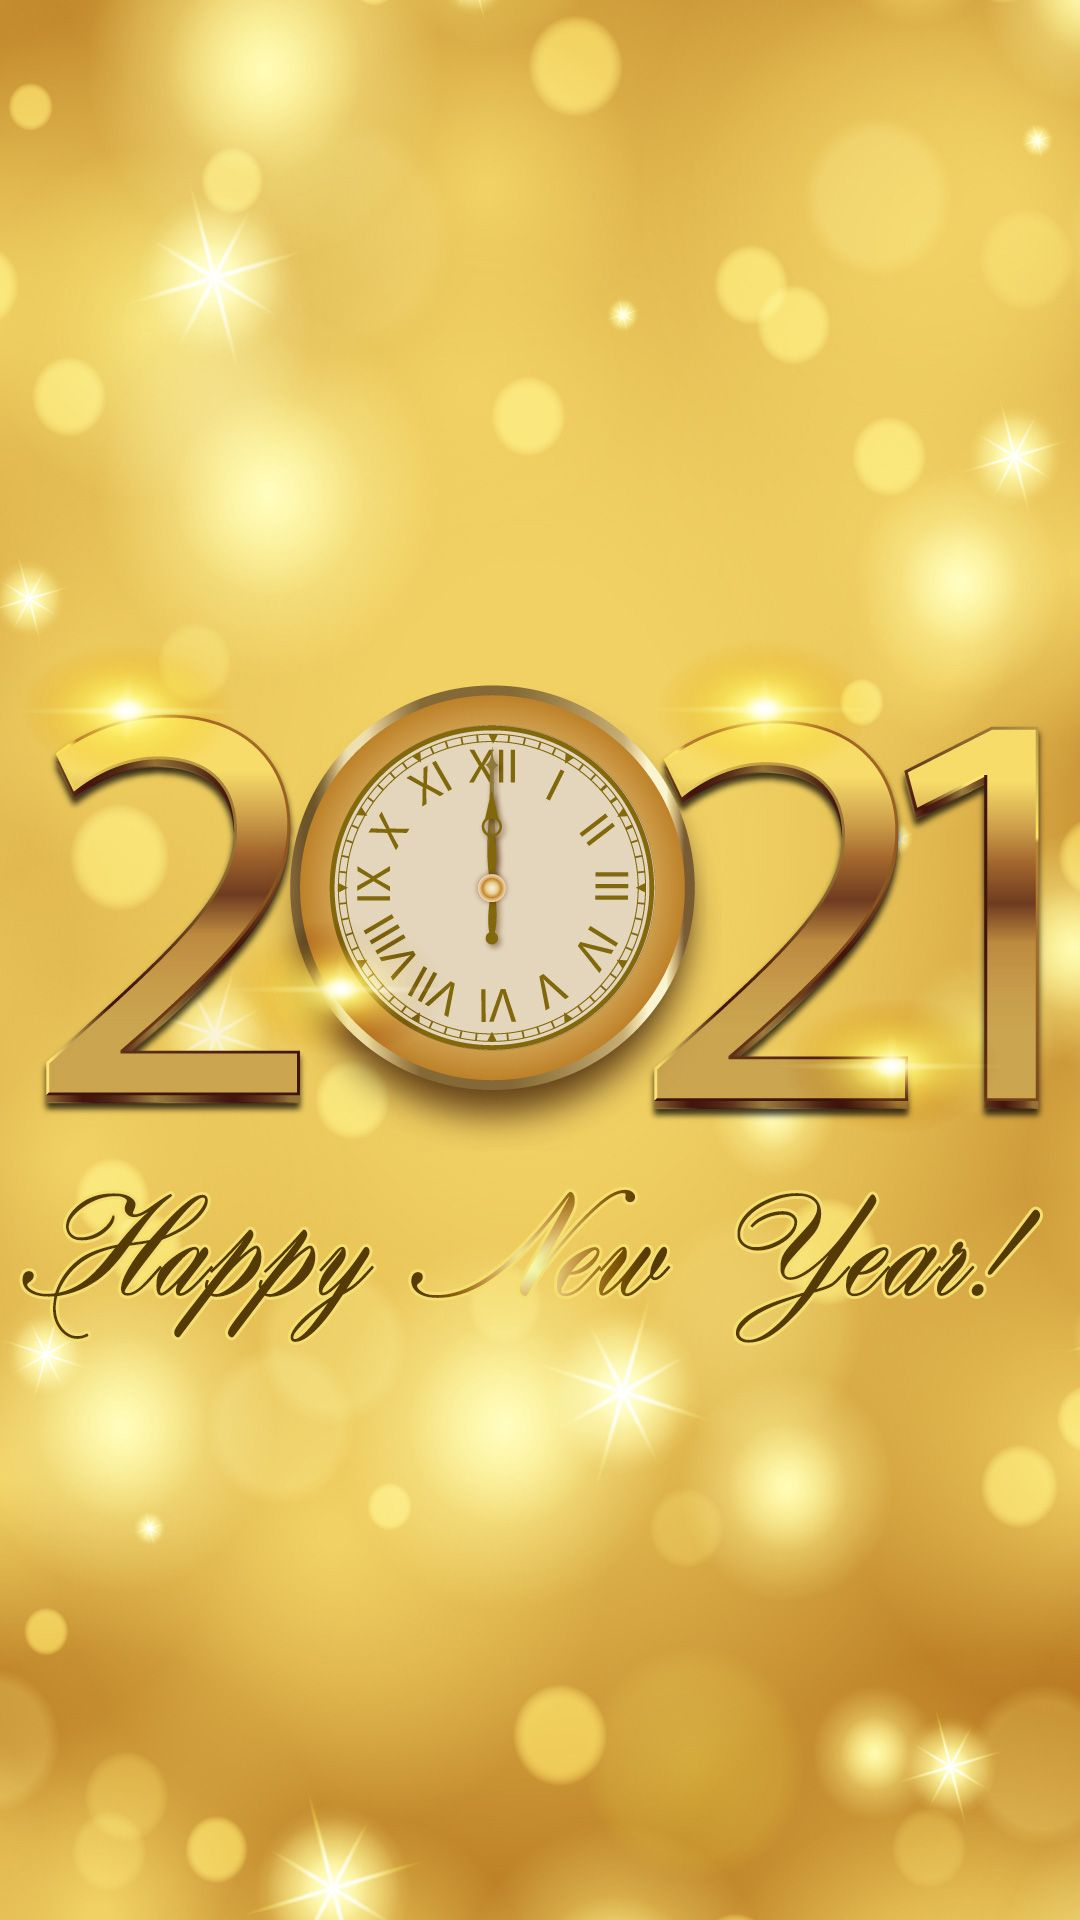 Happy New Year 2021 Wallpapers Top Free Happy New Year 2021 Backgrounds Wallpaperaccess